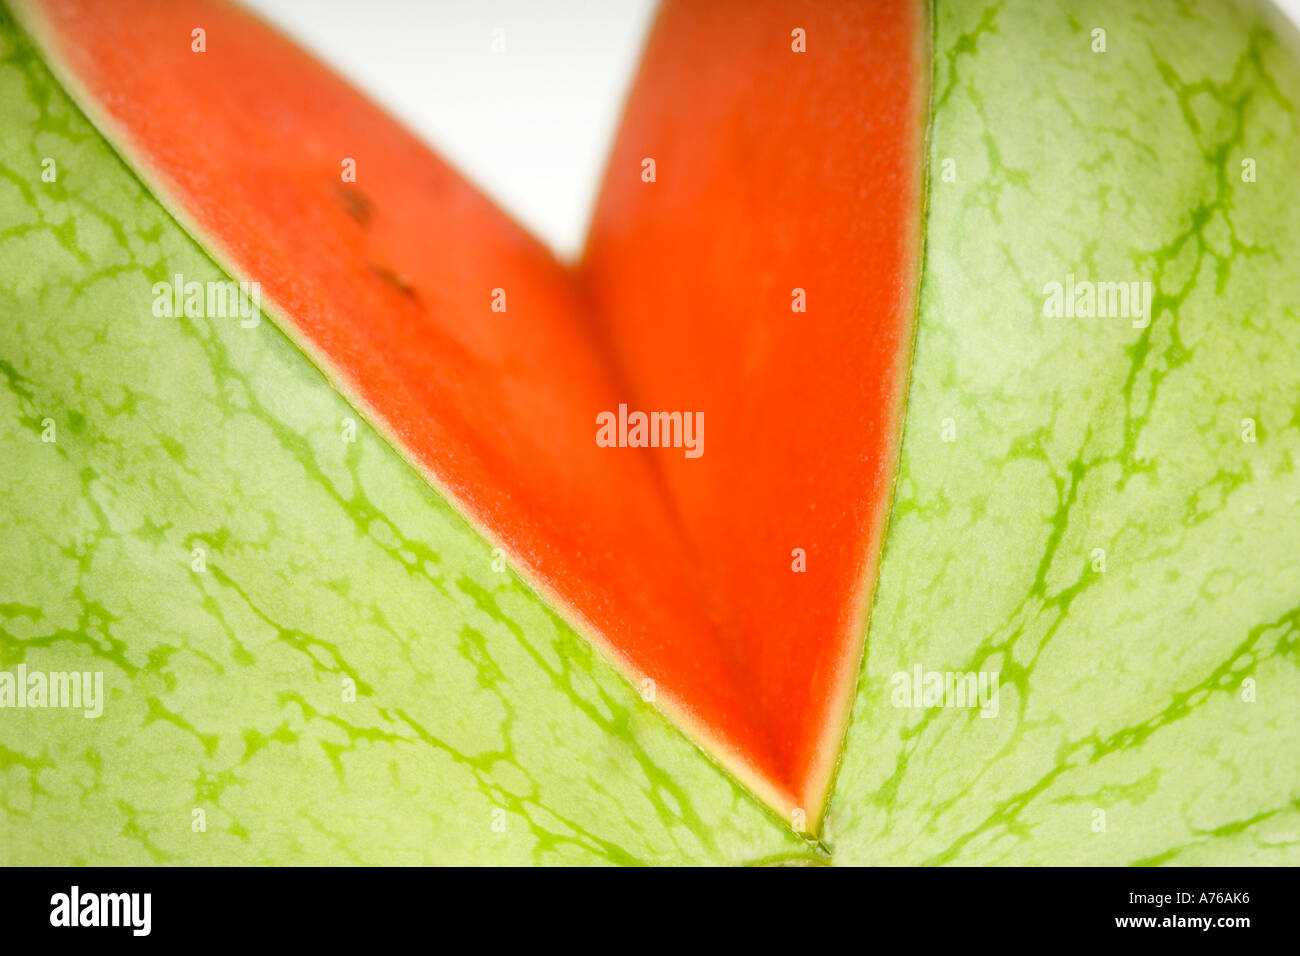 Close up of a whole watermelon with a slice cut out on a pure white background. - Stock Image